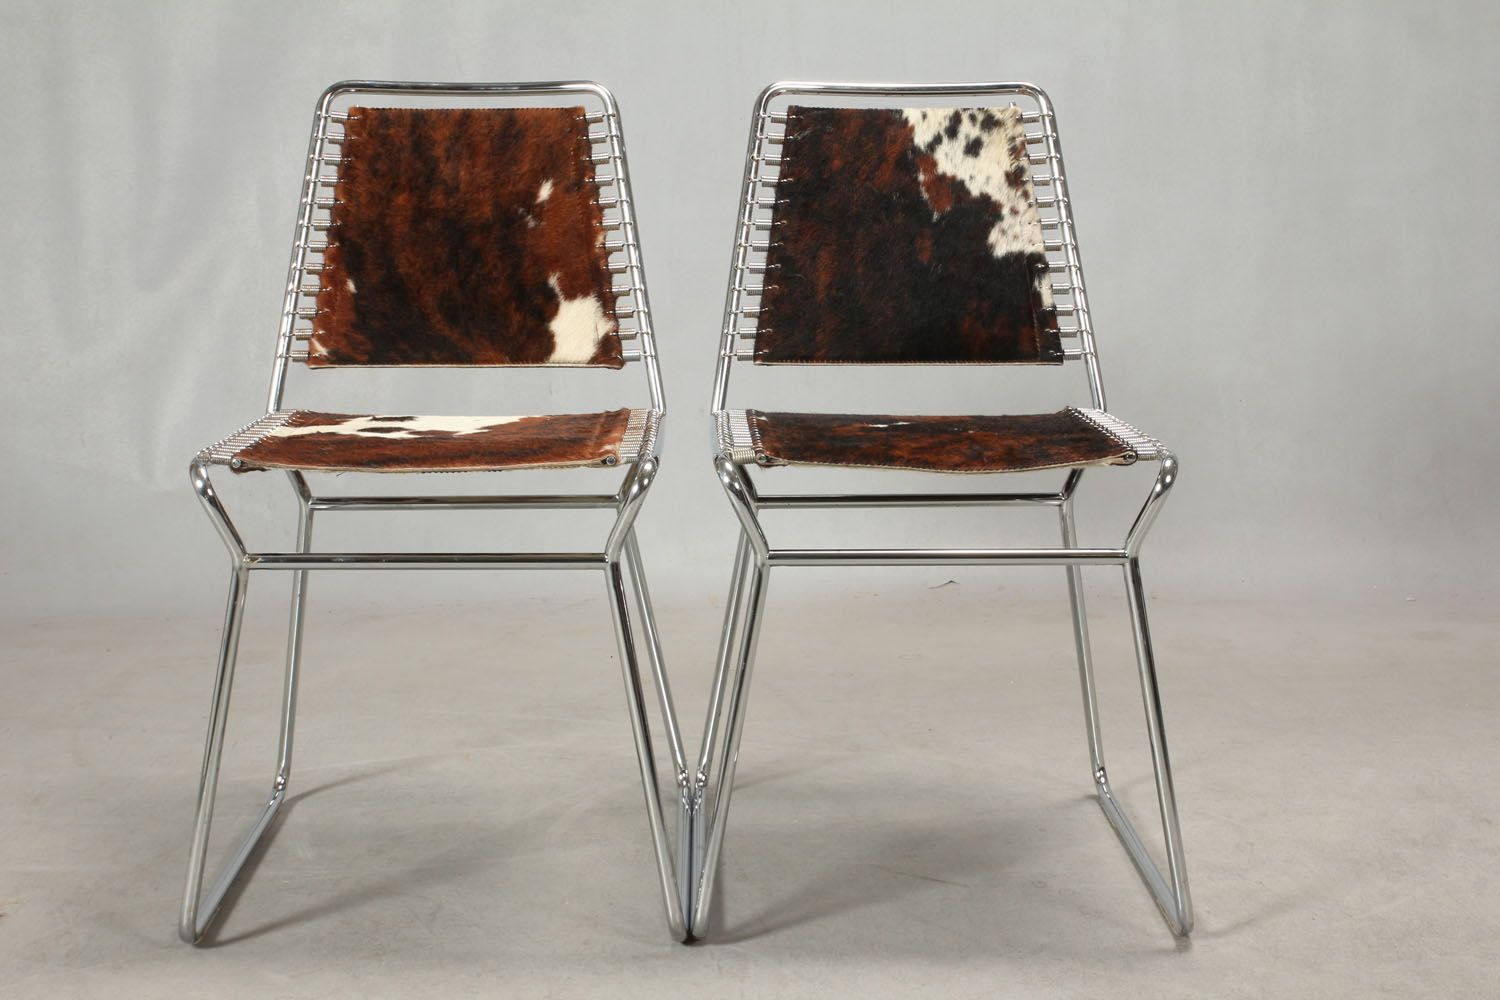 Vintage Danish Cowhide Chairs Set of 2 for sale at Pamono